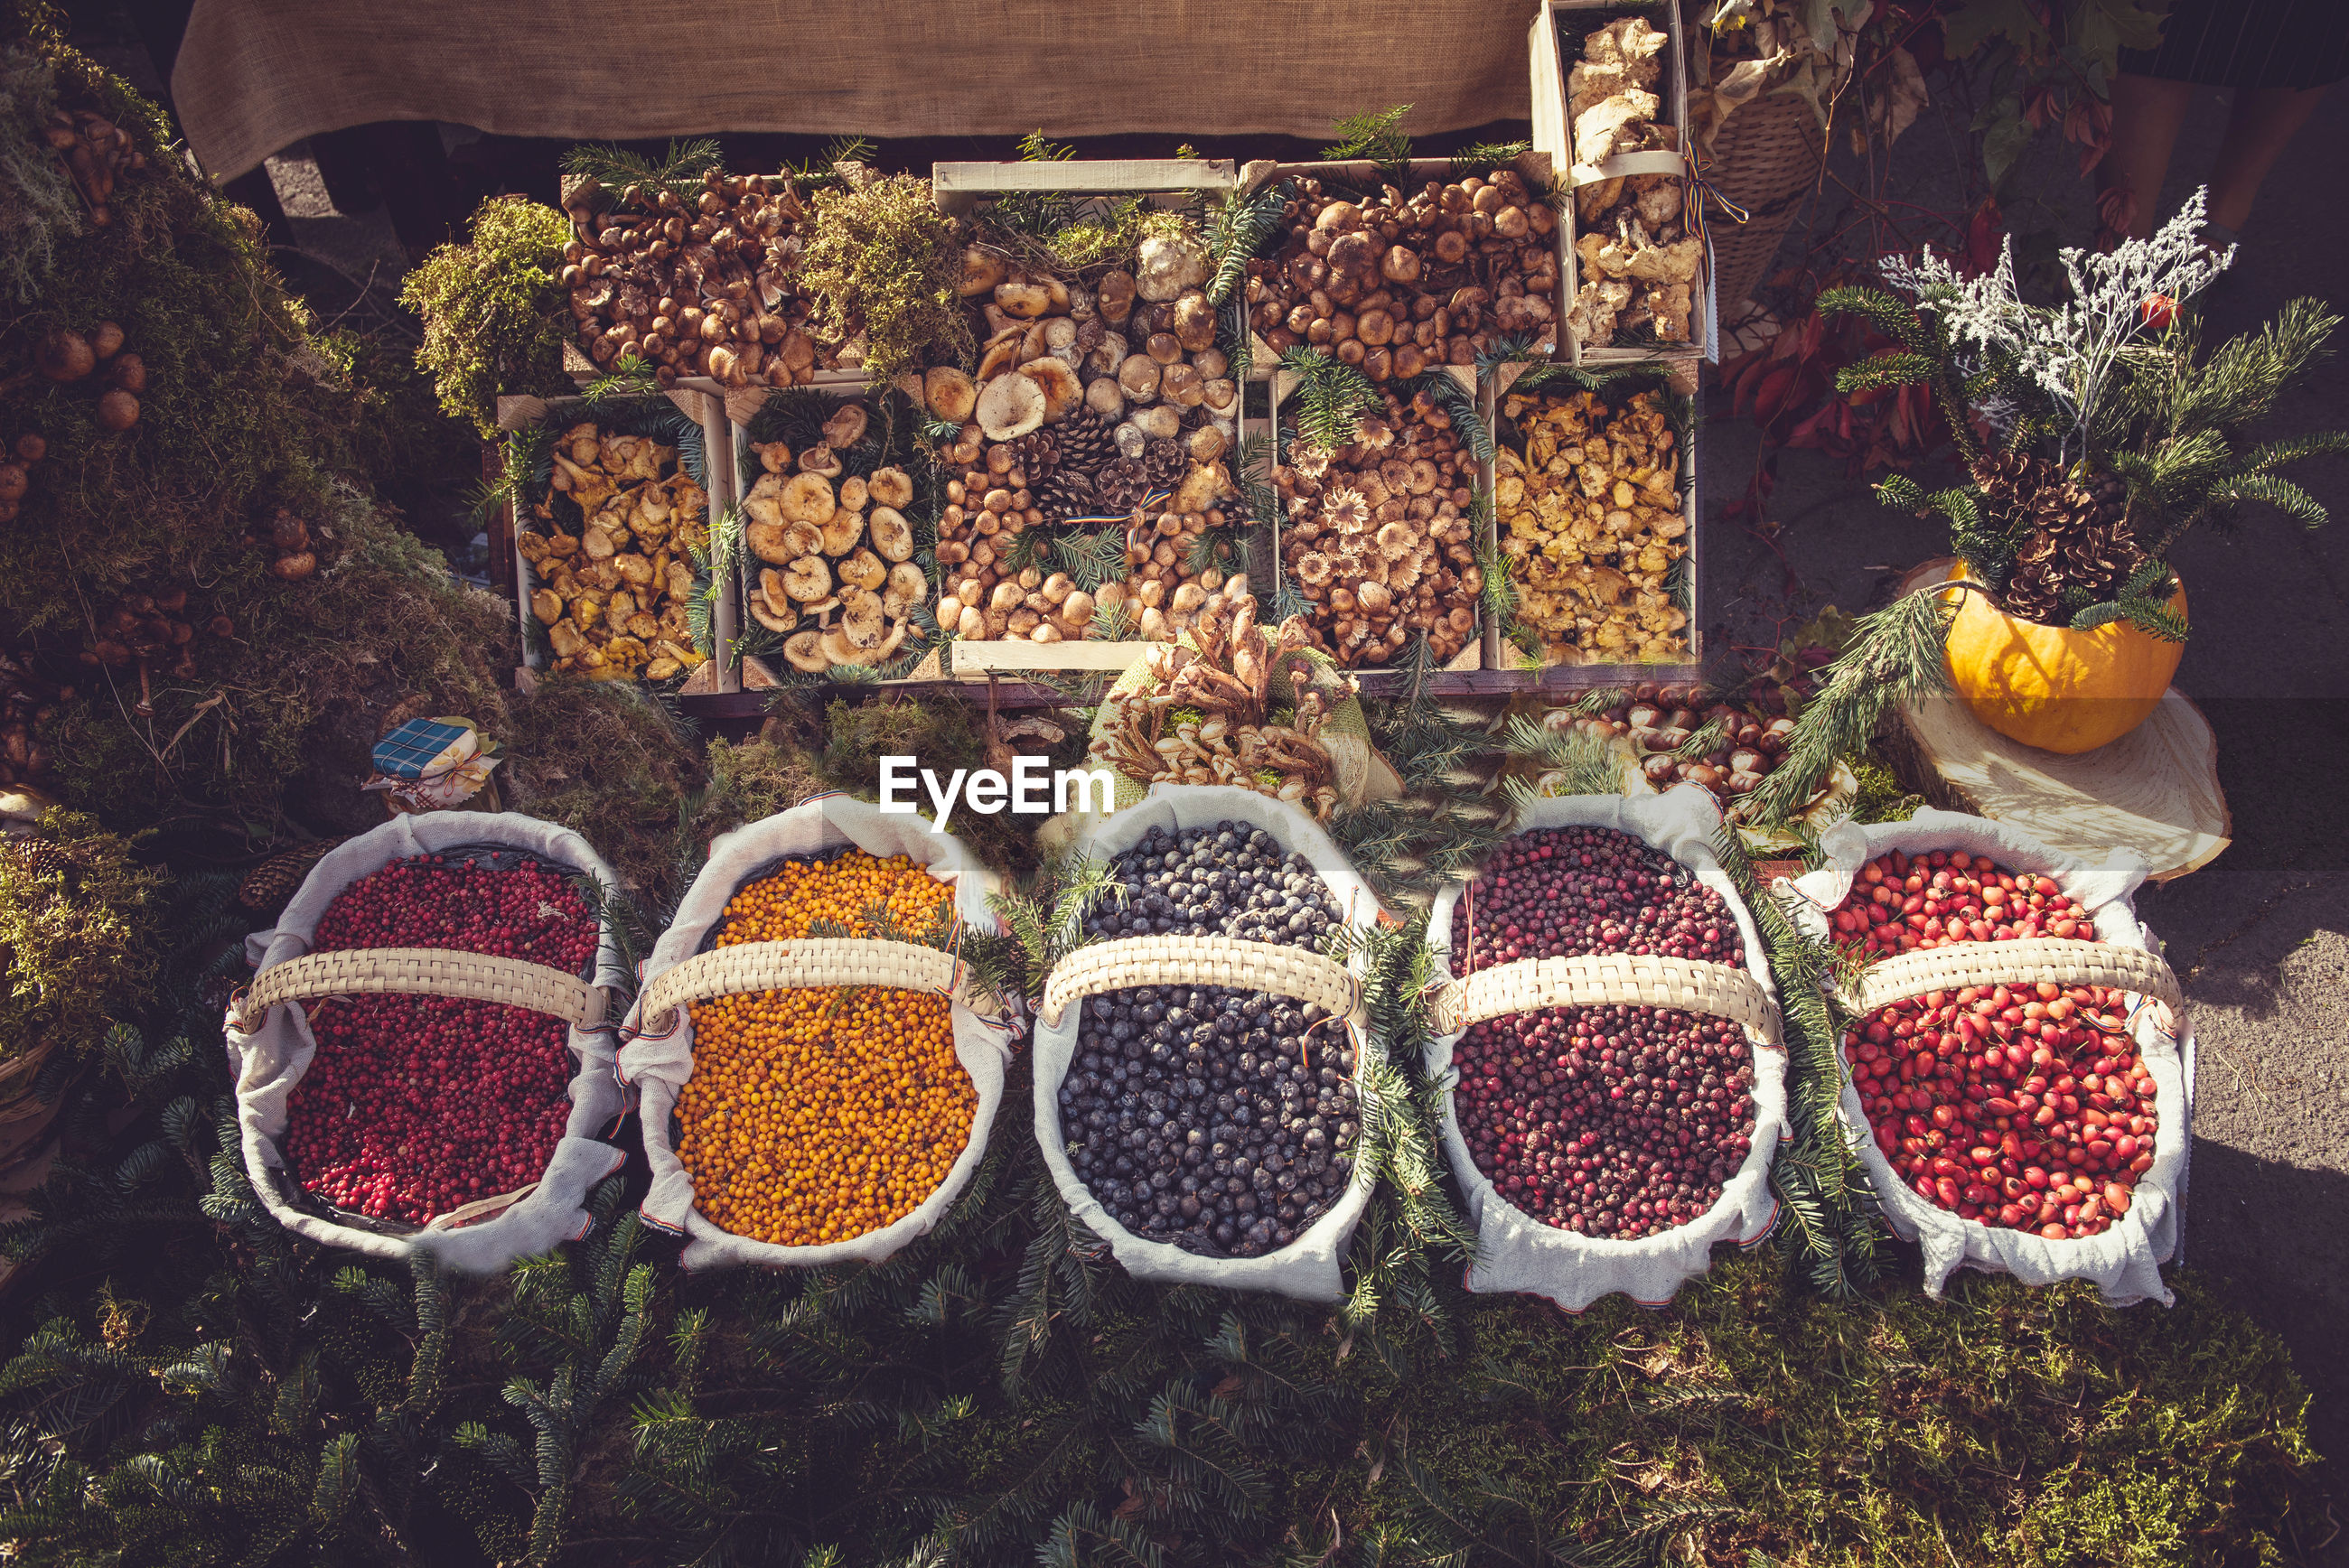 High angle view of food for sale at market stall